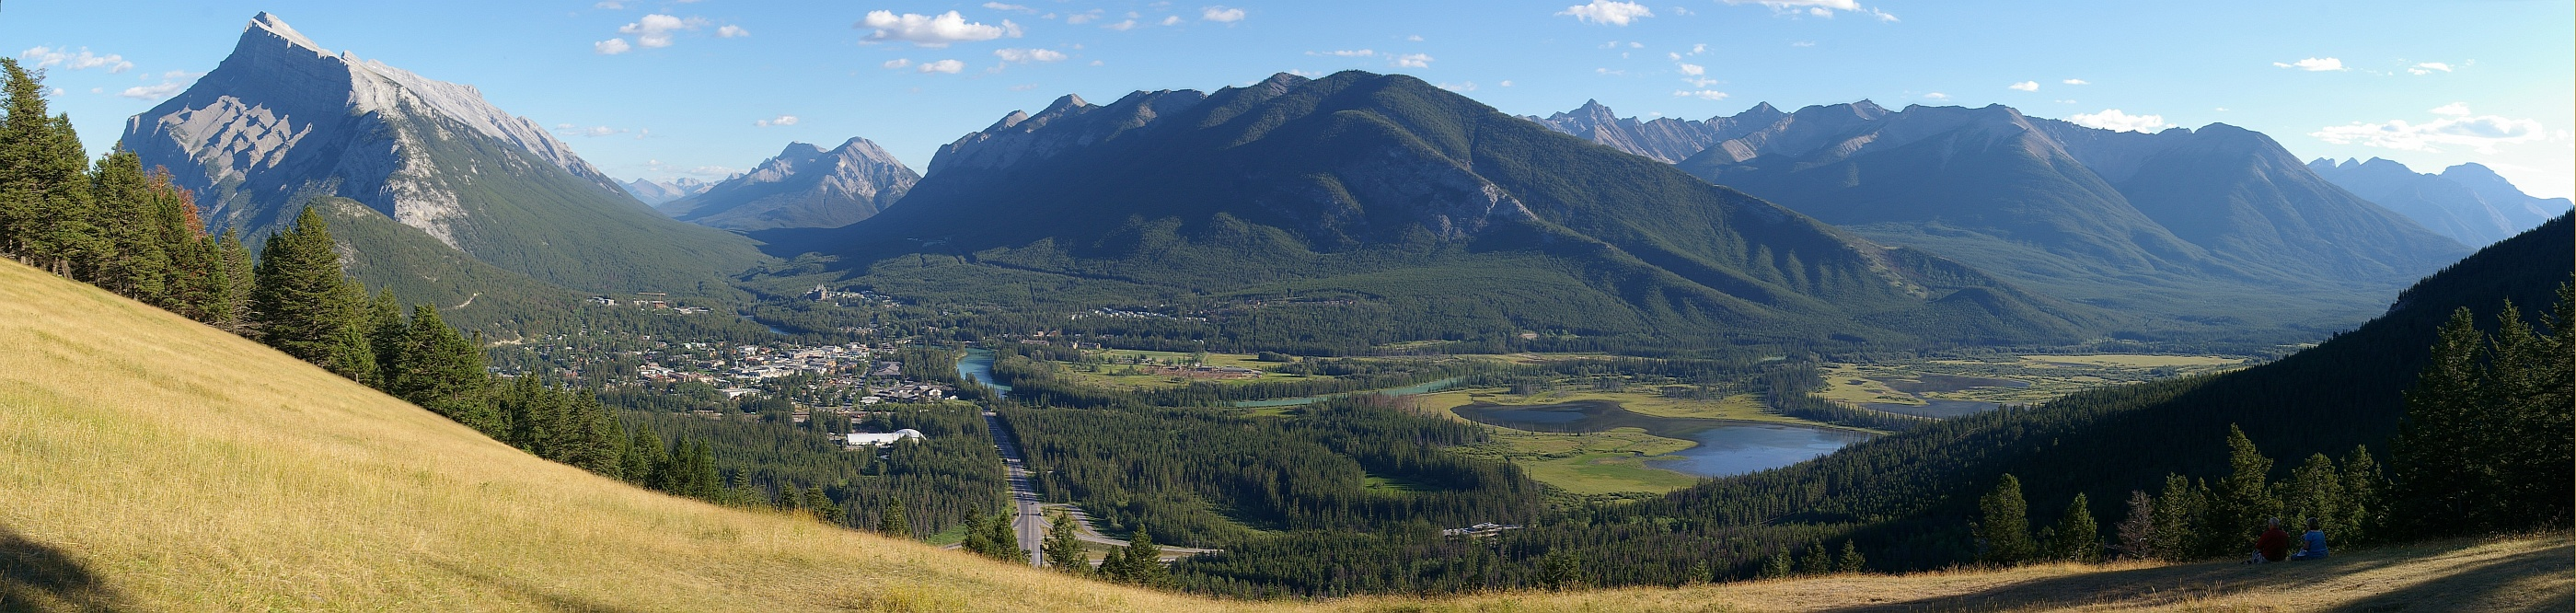 pano3_crop1_panoramic_view_from_mt_norquay_road_overlook_180.jpg